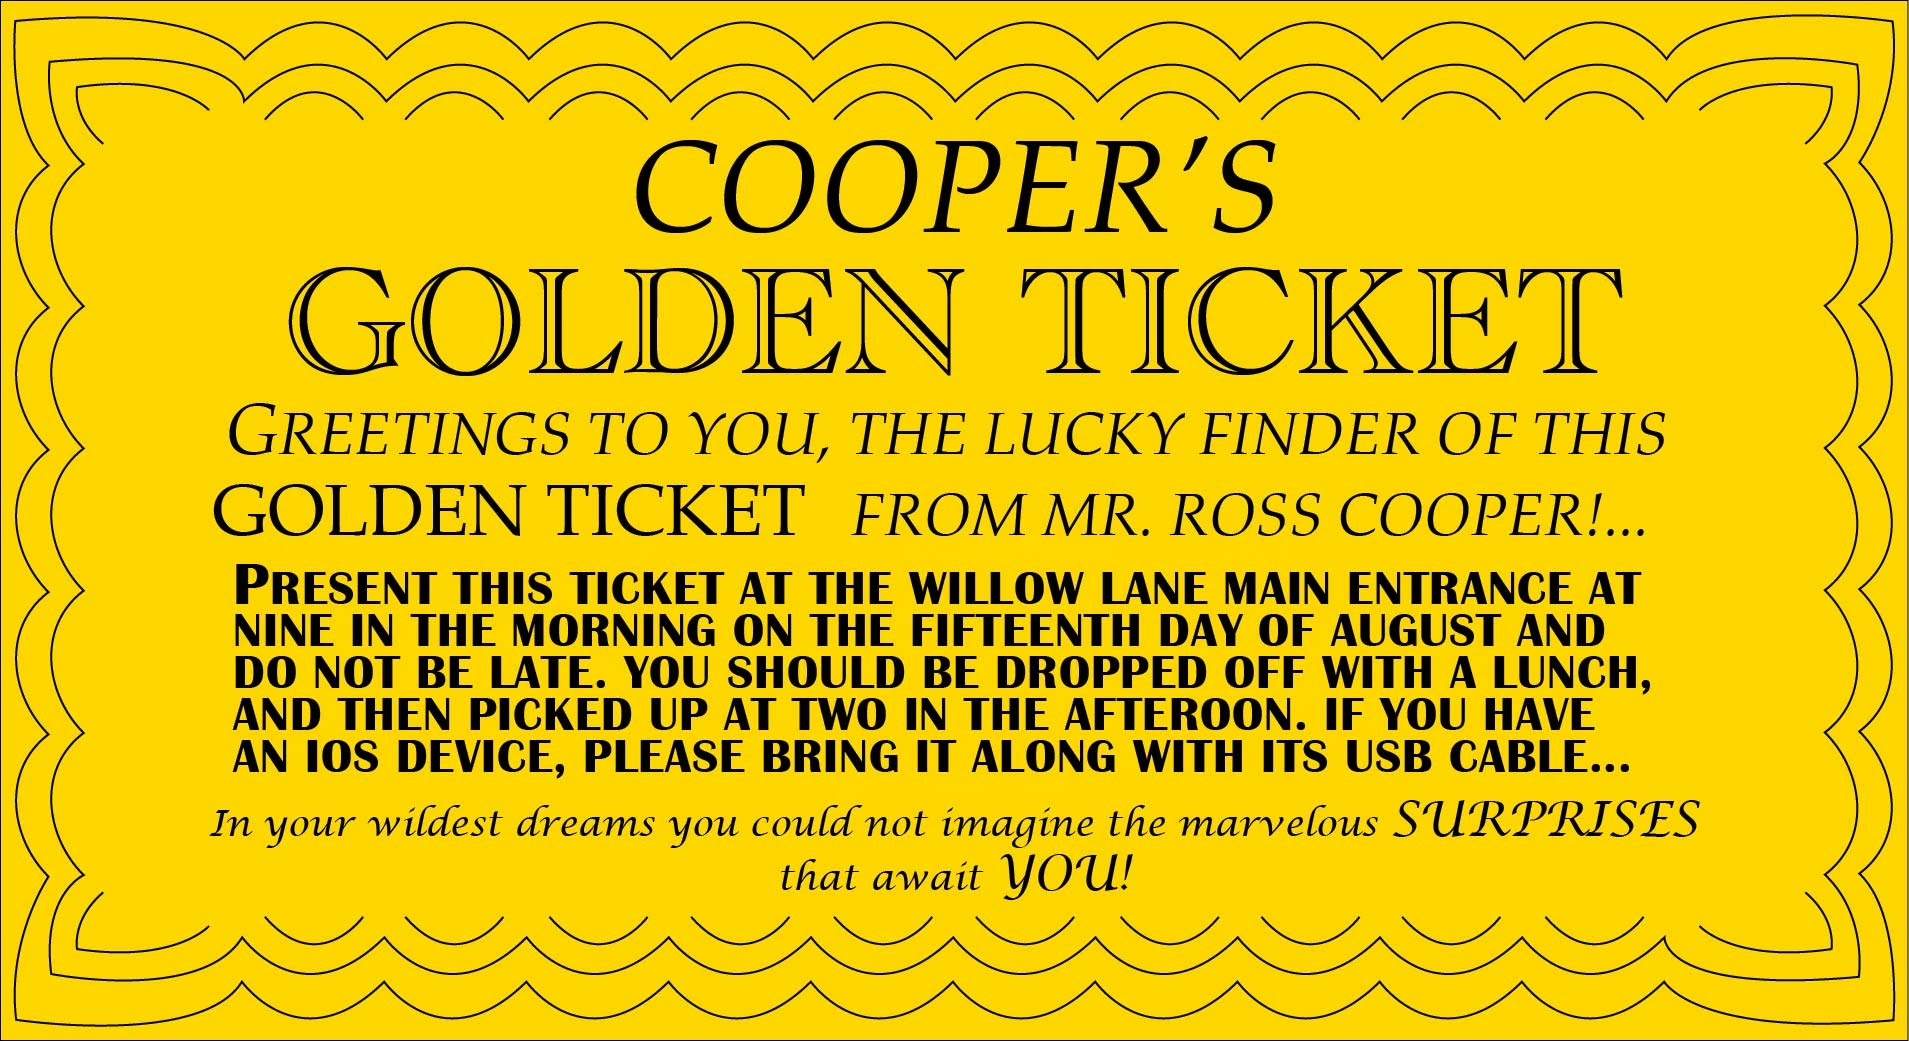 polar express golden ticket template - september 2013 ross cooper